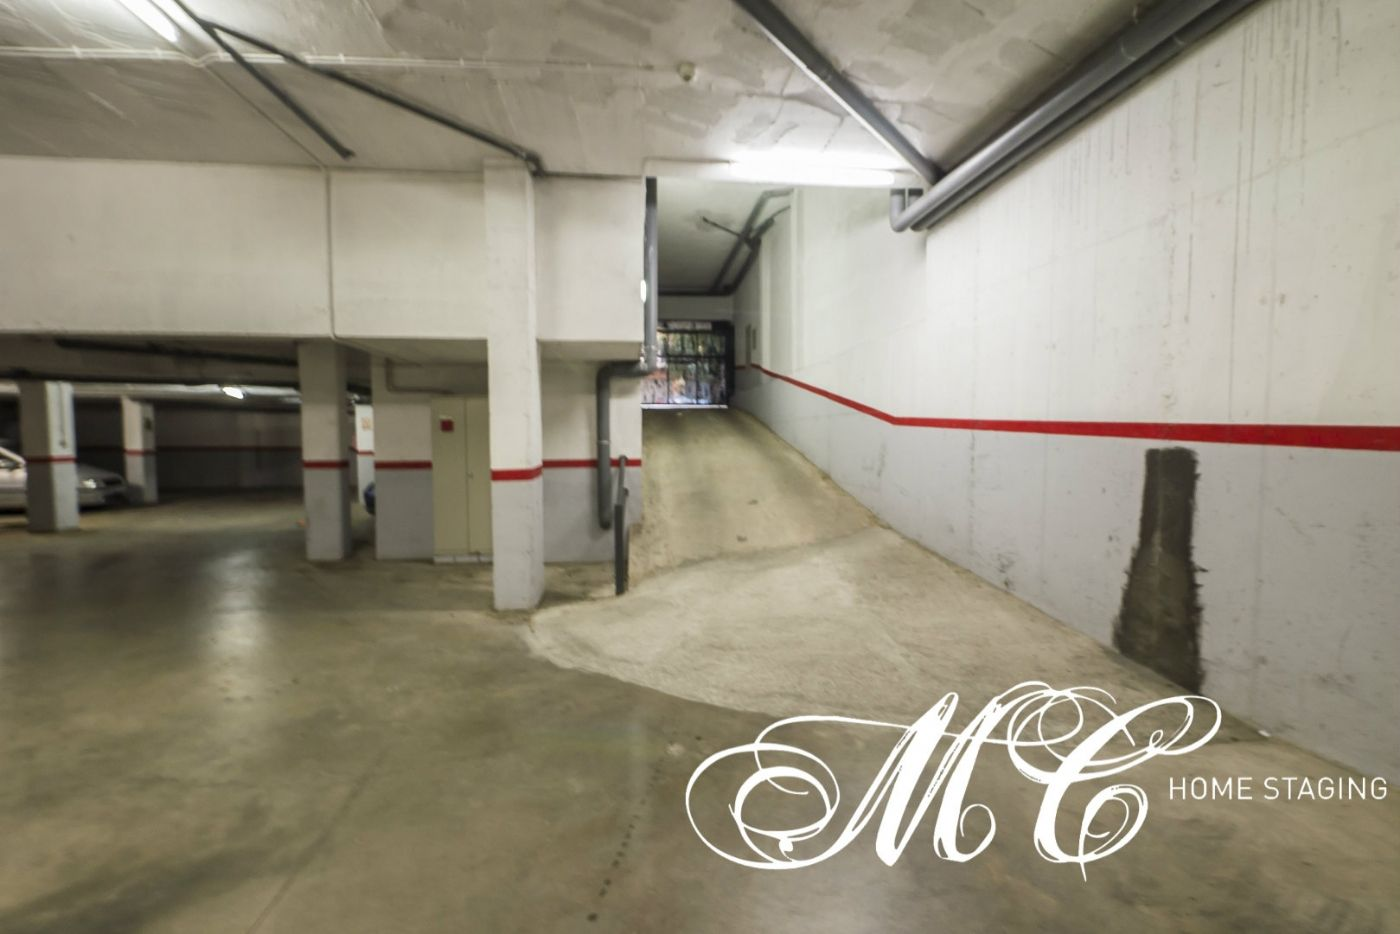 Rent Car parking in Carrer figueres, 22. Parking alquiler torroella